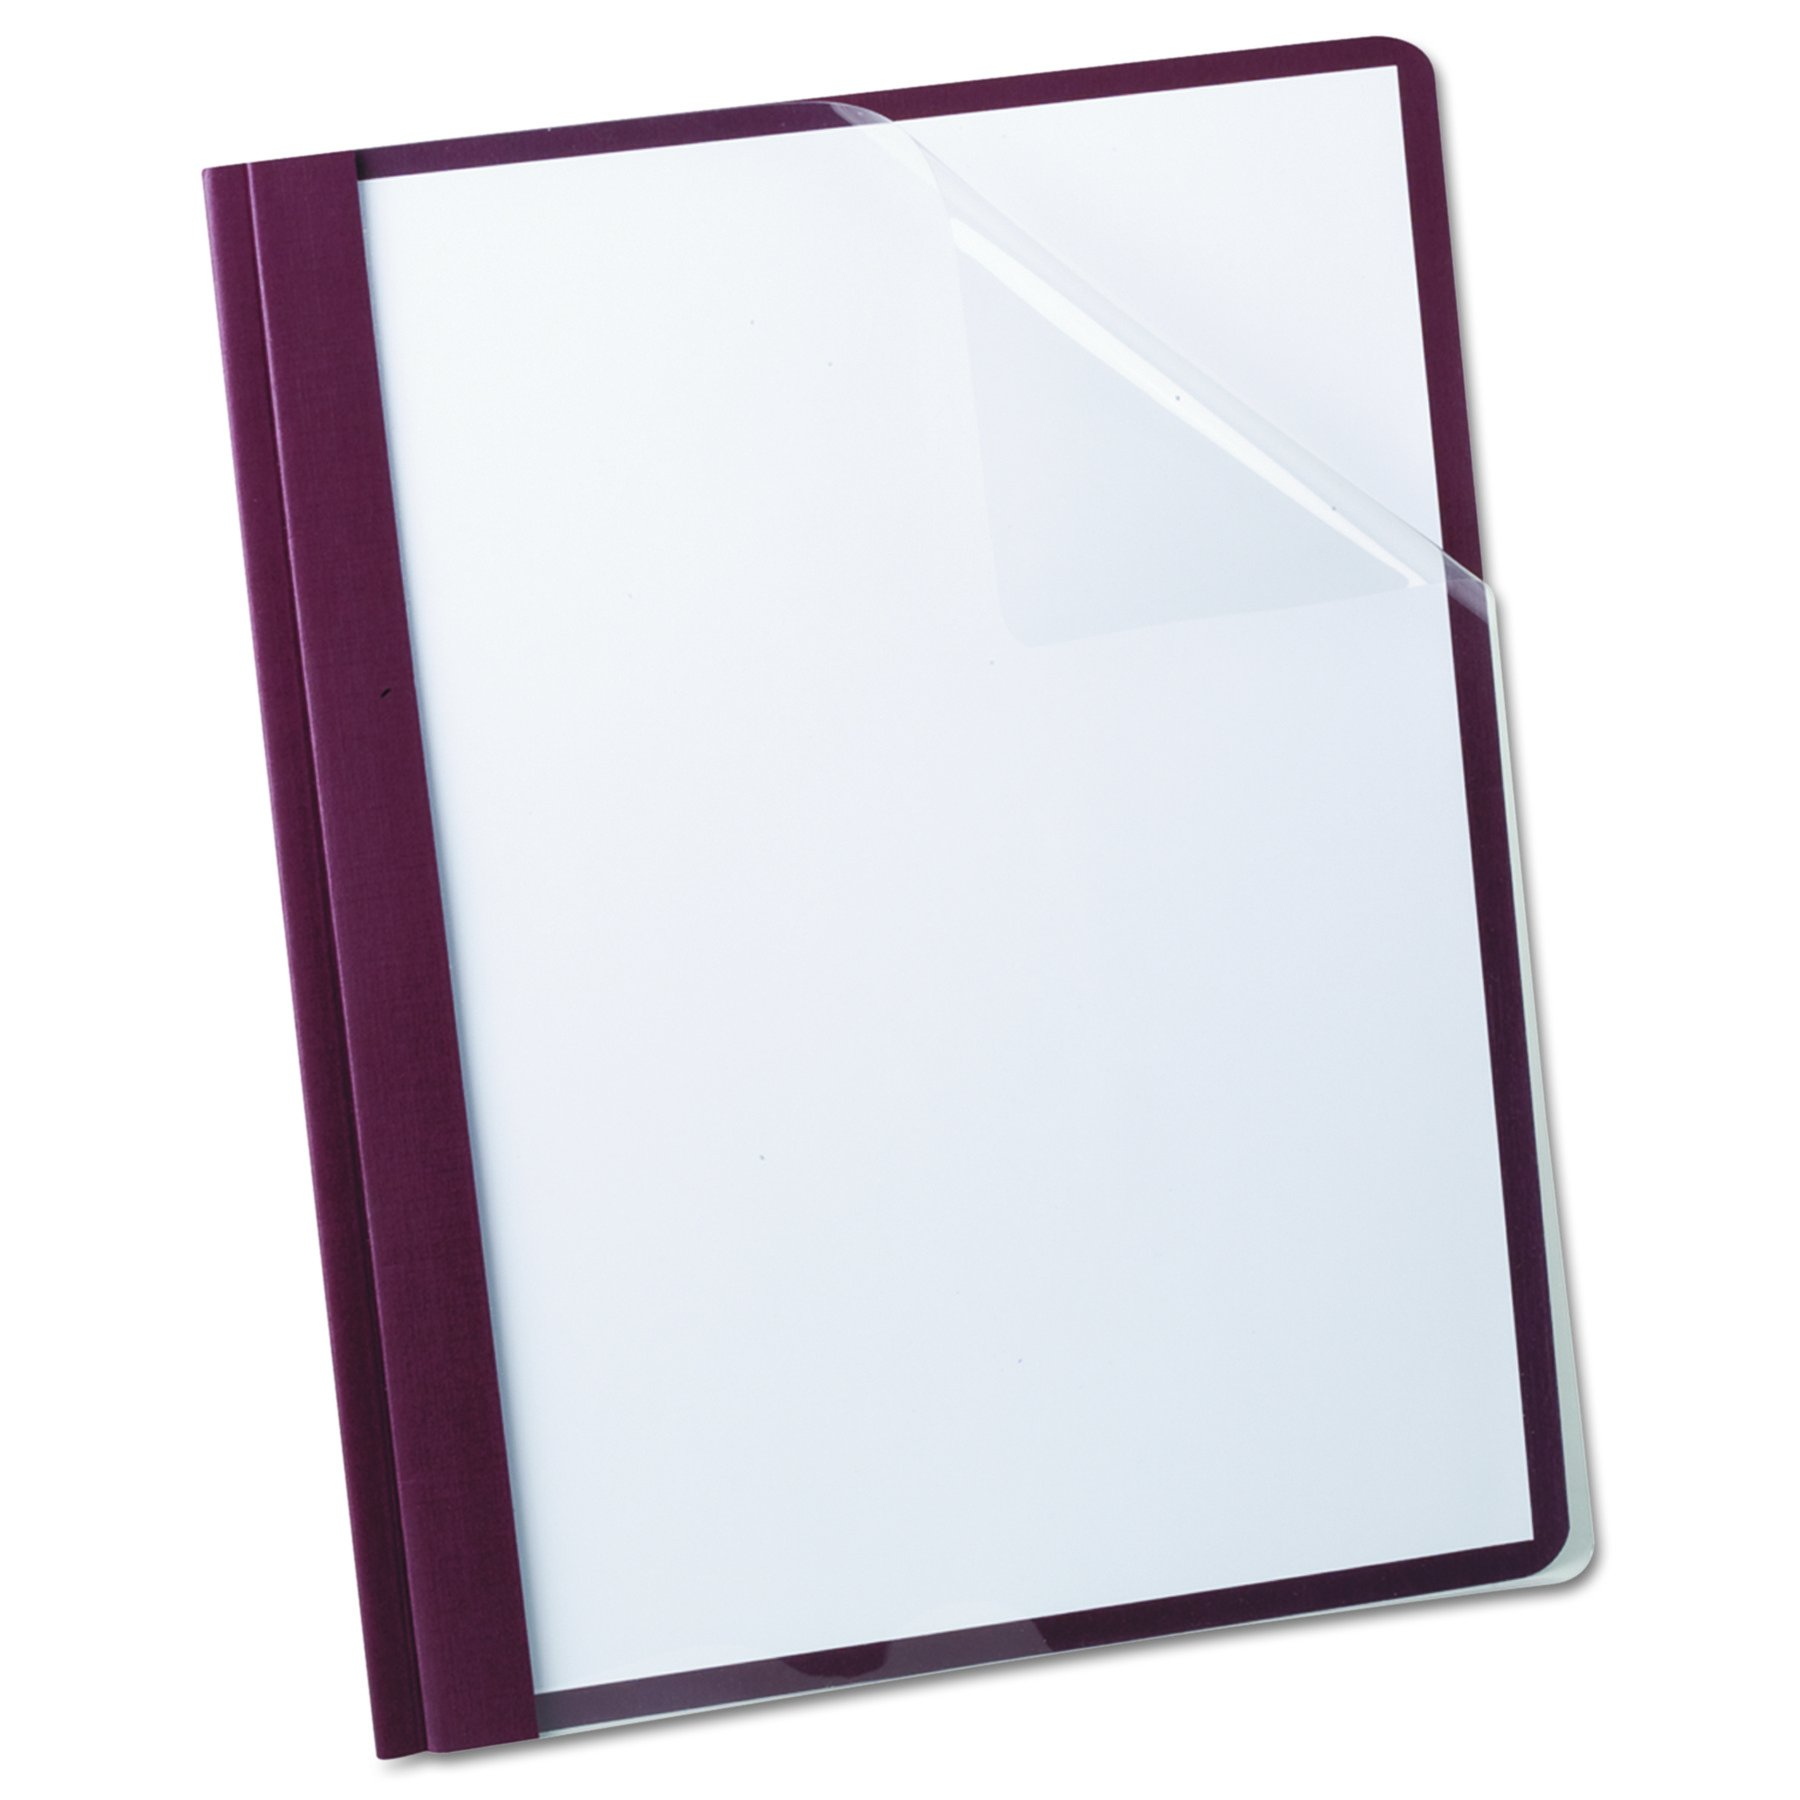 Oxford 53341 Clear Front Report Cover, 3-Prong, 1/2 Capacity, Burgundy Back Cover, 25/box by Oxford (Image #2)